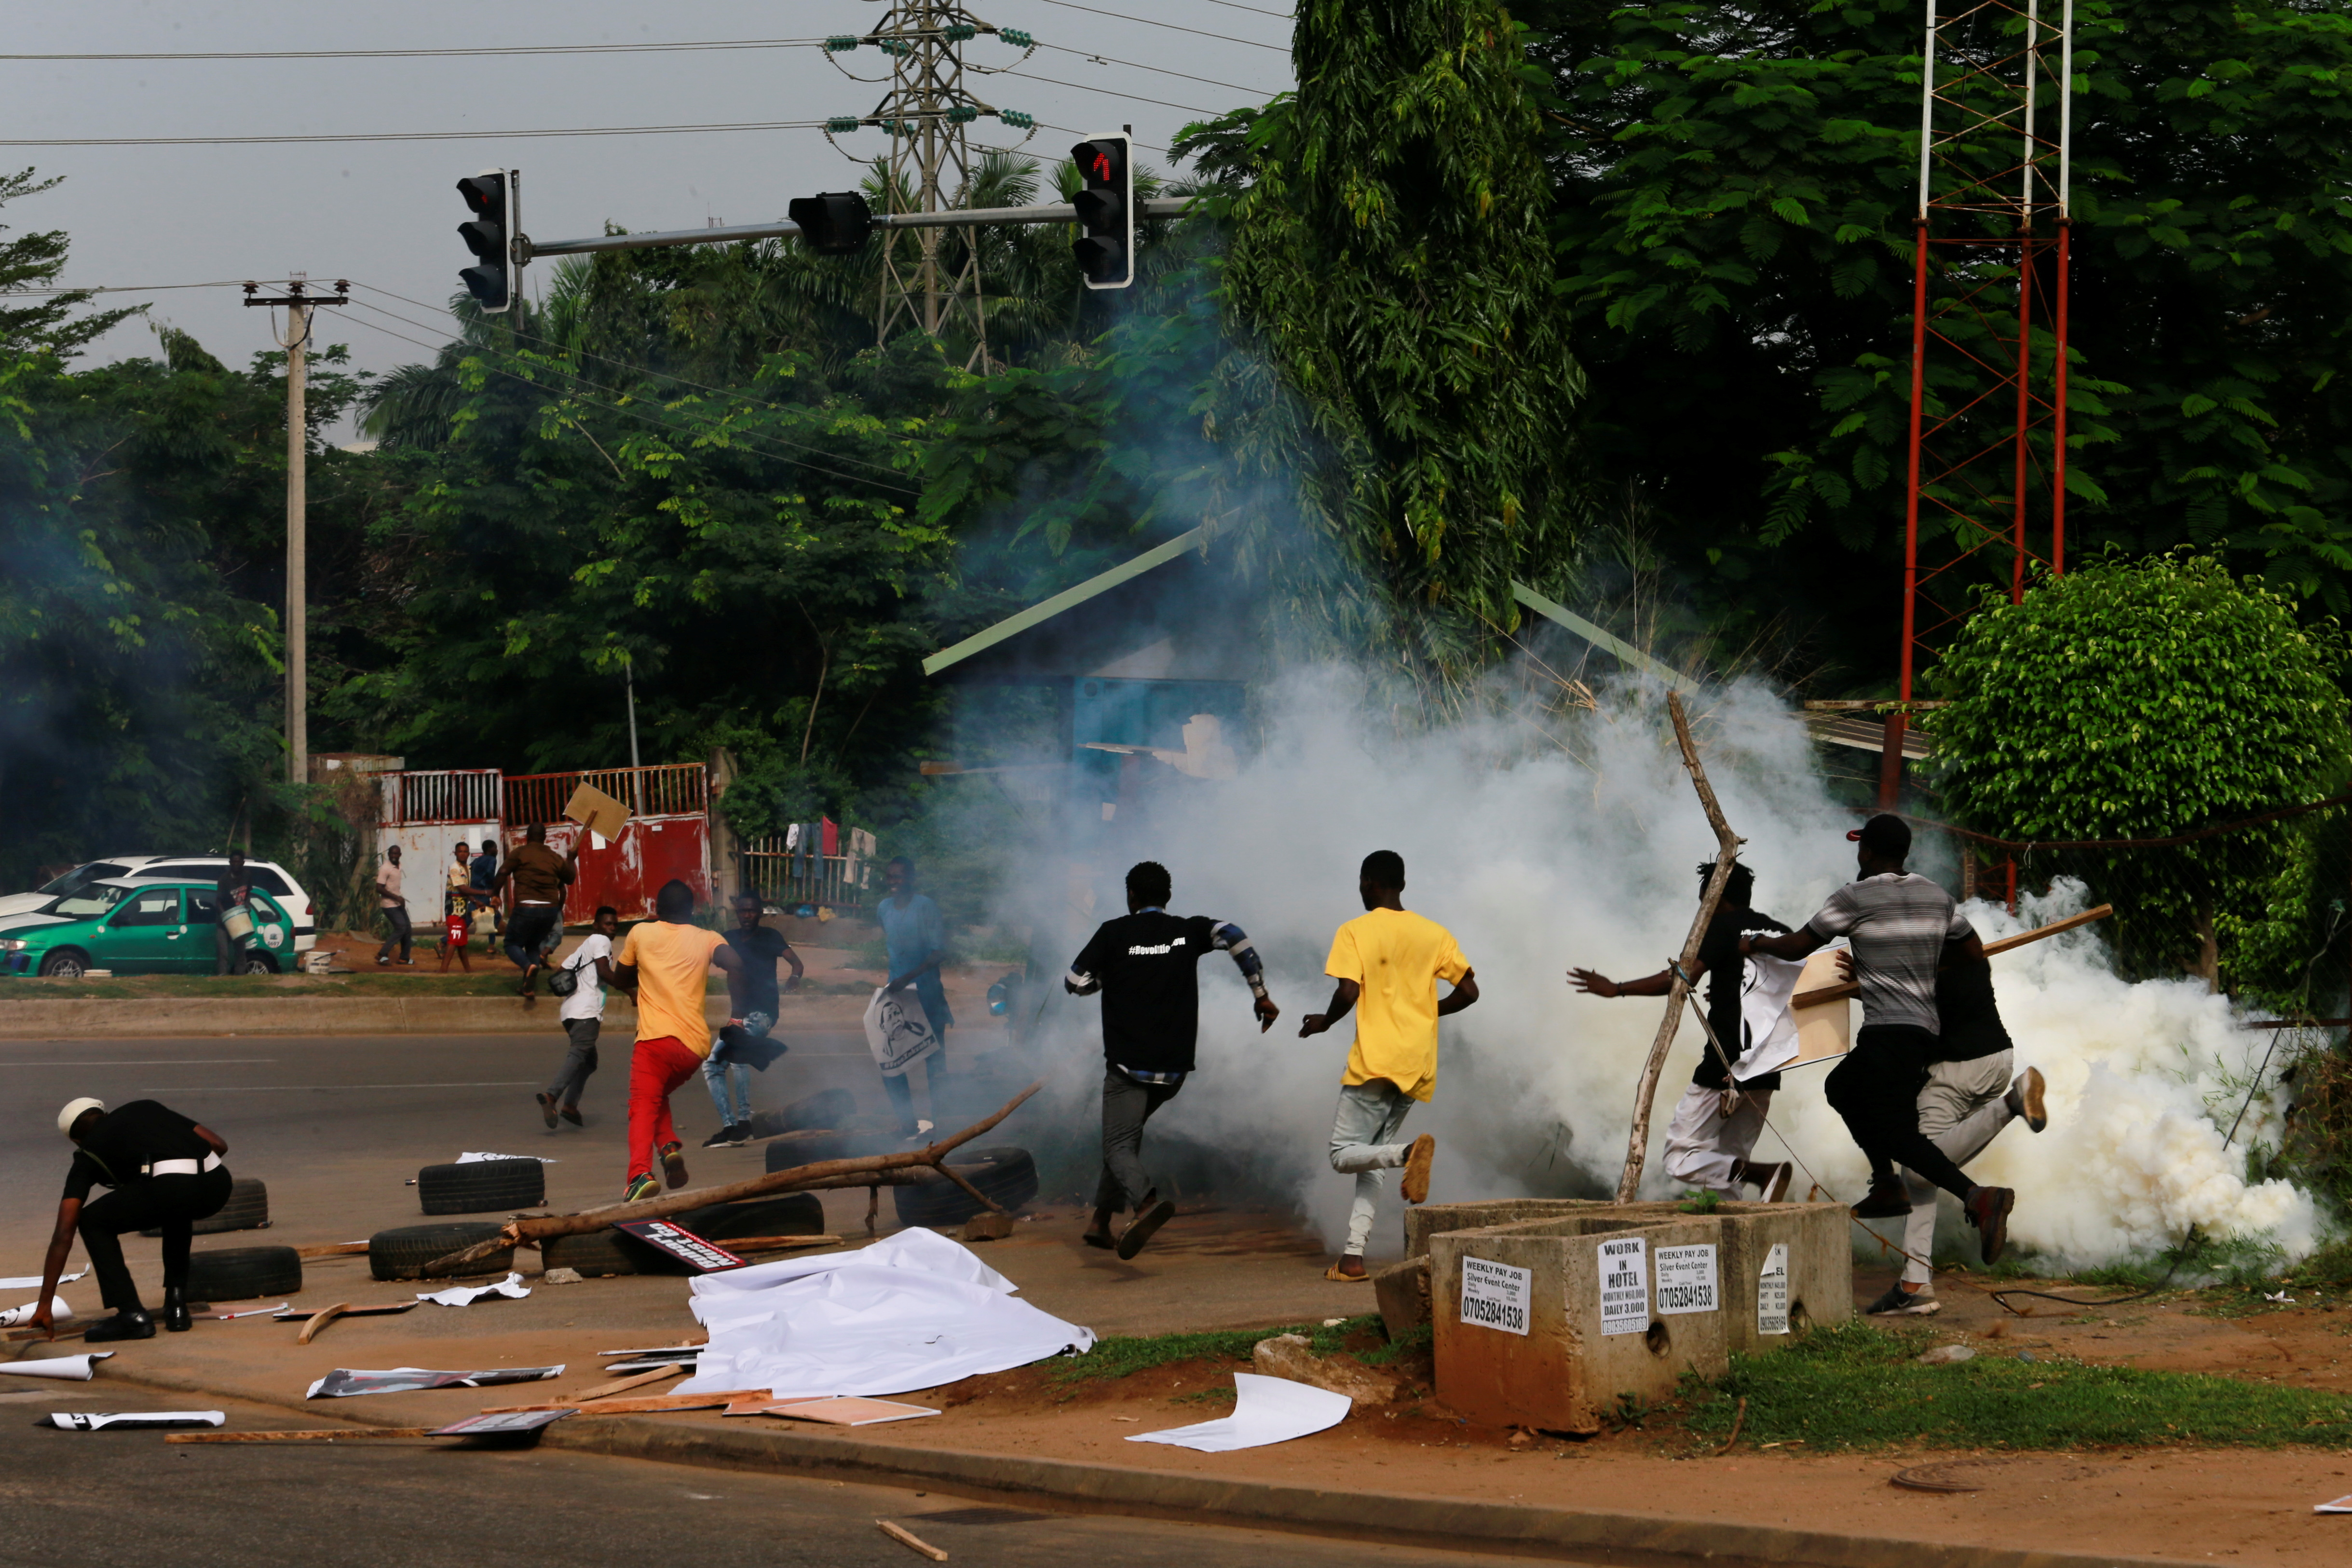 Protesters run after police fired tear gas during a June 12 Democracy Day rally in Abuja, Nigeria June 12, 2021. REUTERS/Afolabi Sotunde